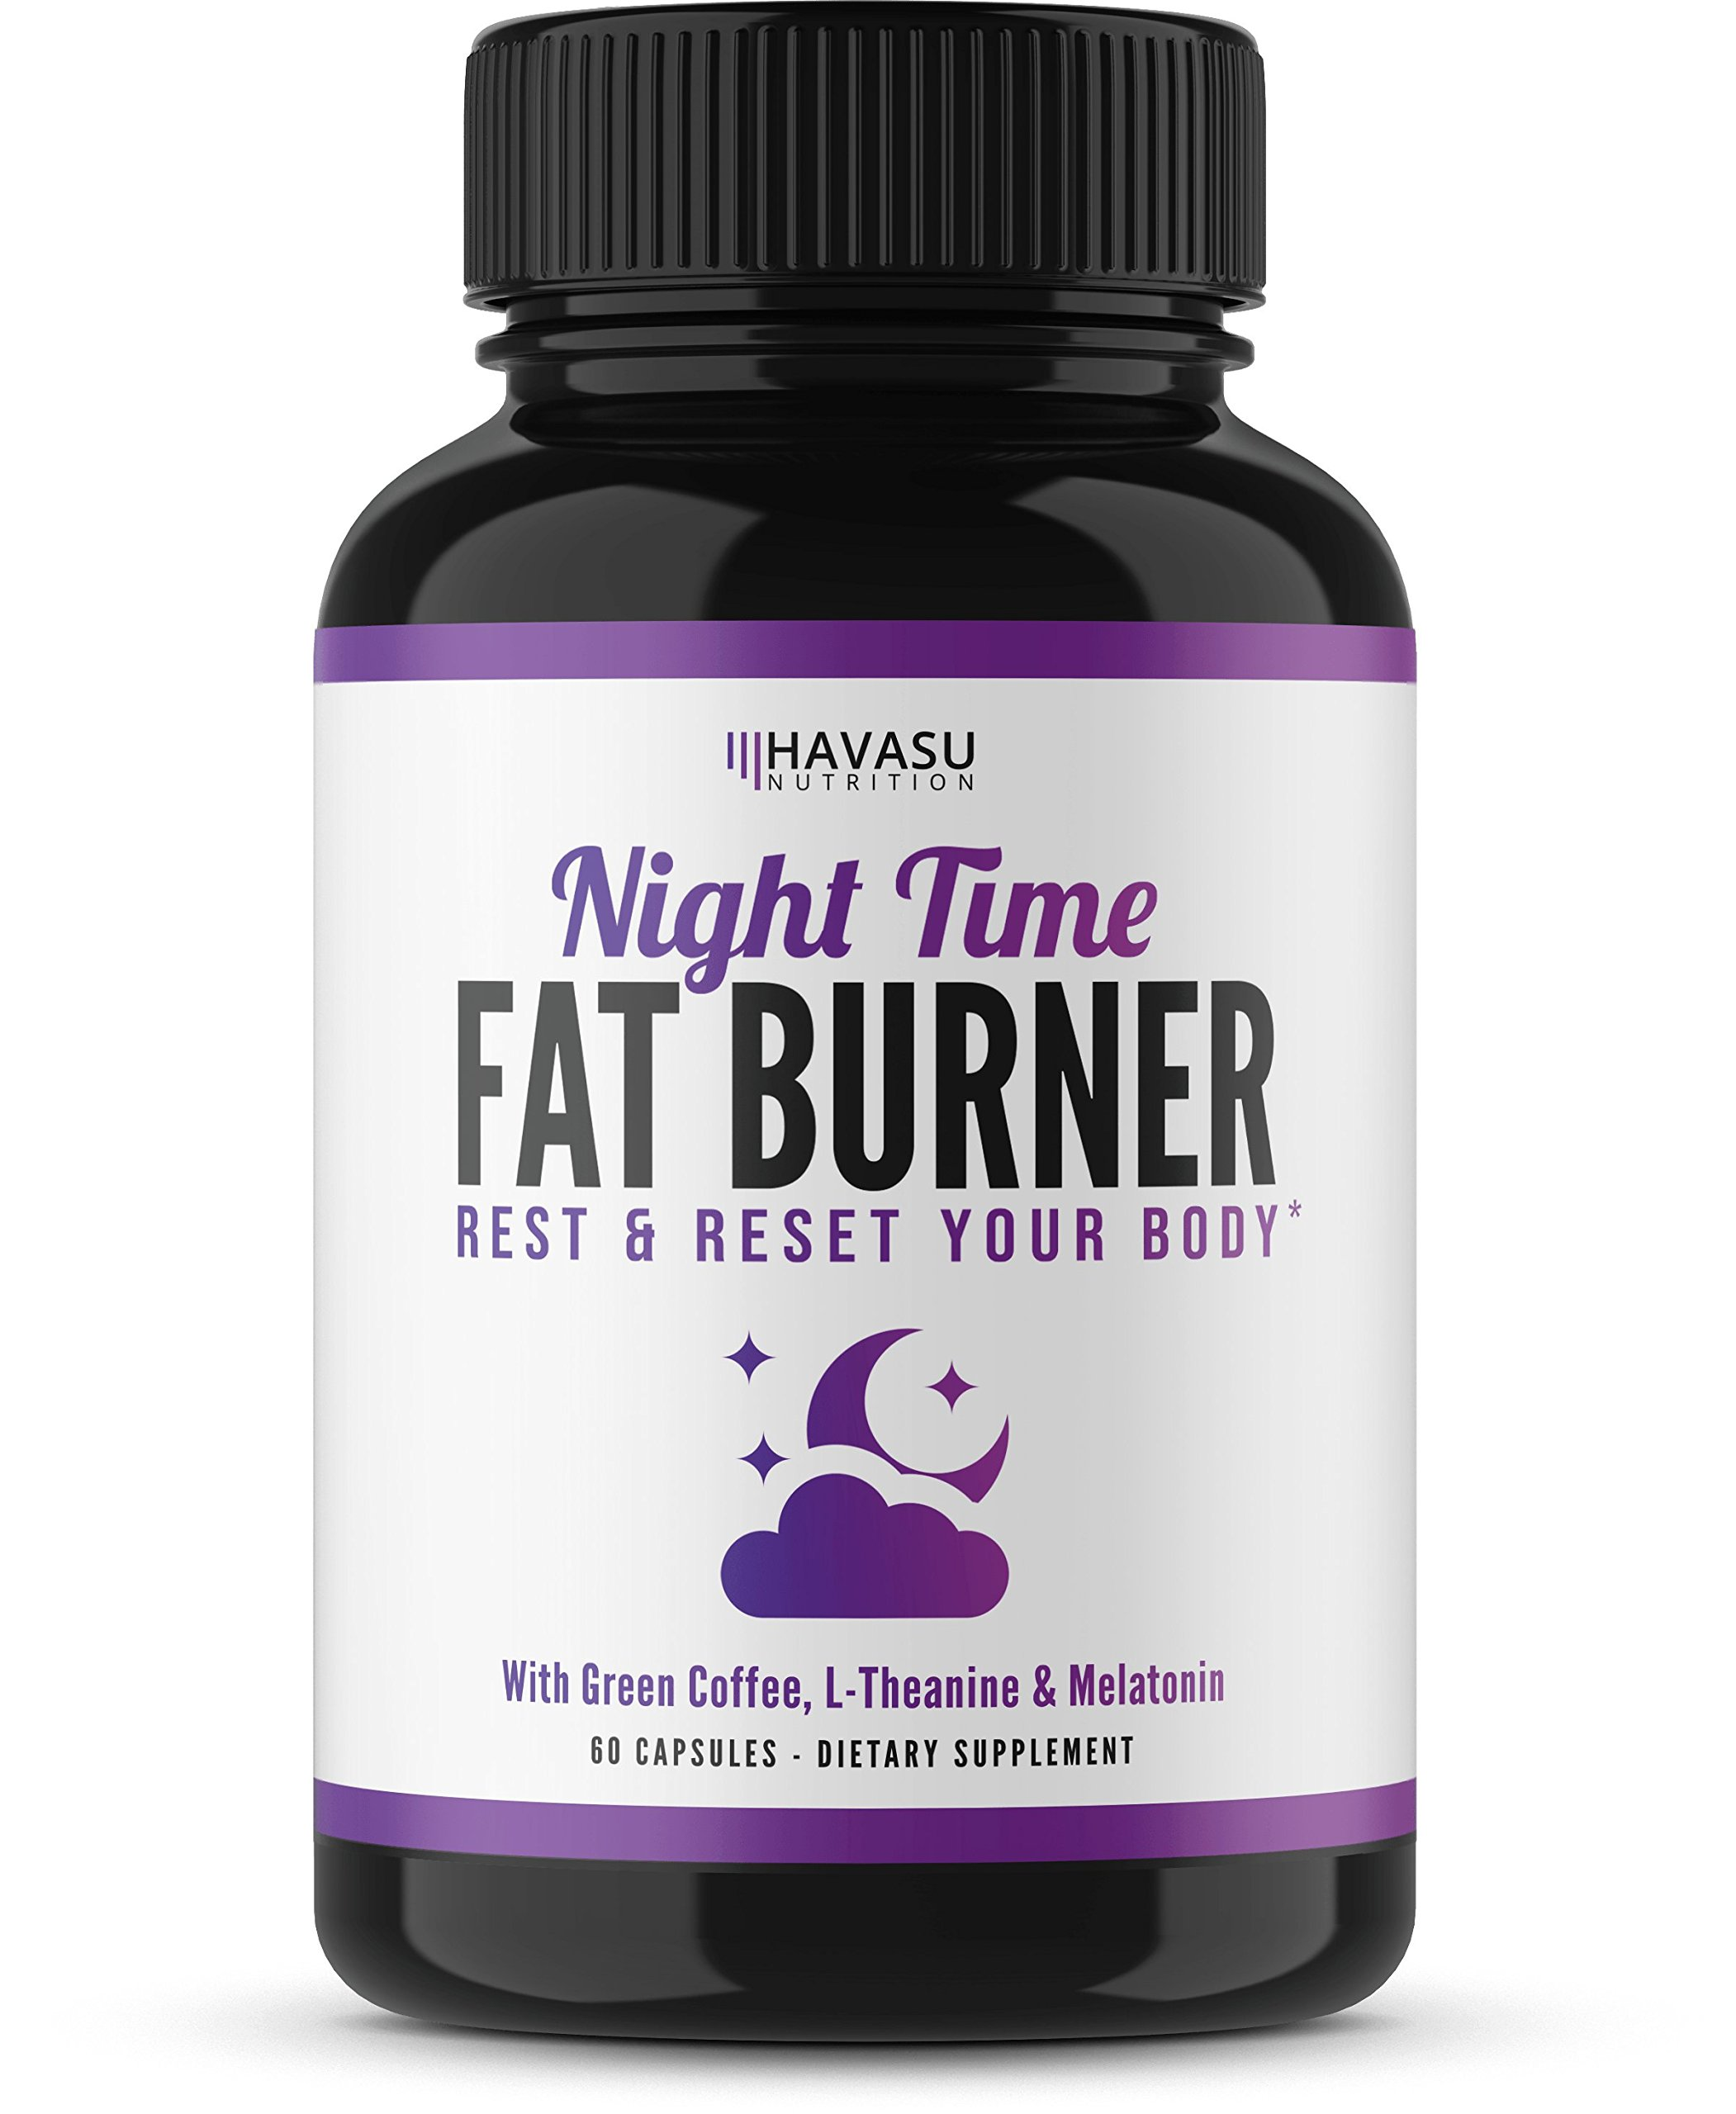 Havasu Nutrition Night Time Weight Loss Pills with Vitamin D, Green Coffee Bean Extract, White Kidney Bean Extract, L-Theanine, L-Tryptophan, Melatonin- Non Habit Forming PM Fat Burner, 60 Capsules by Havasu Nutrition